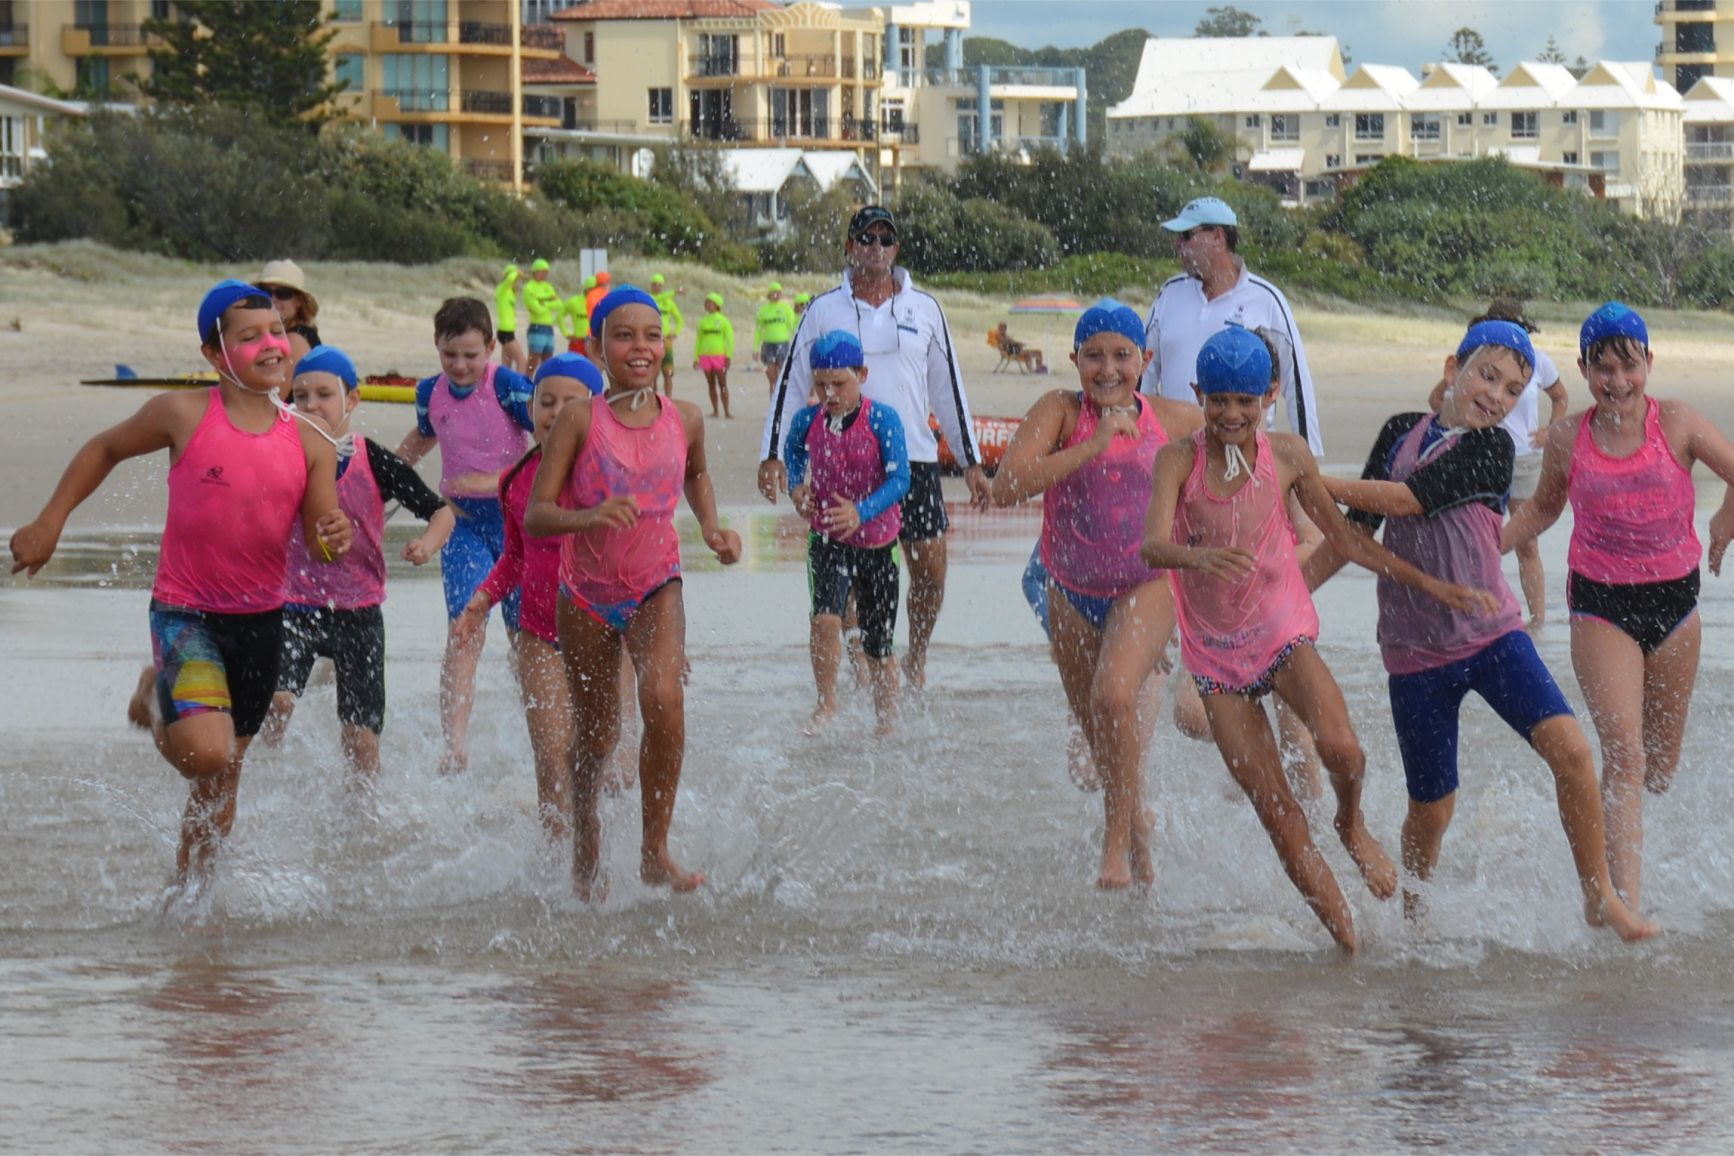 nippers run swim run fun